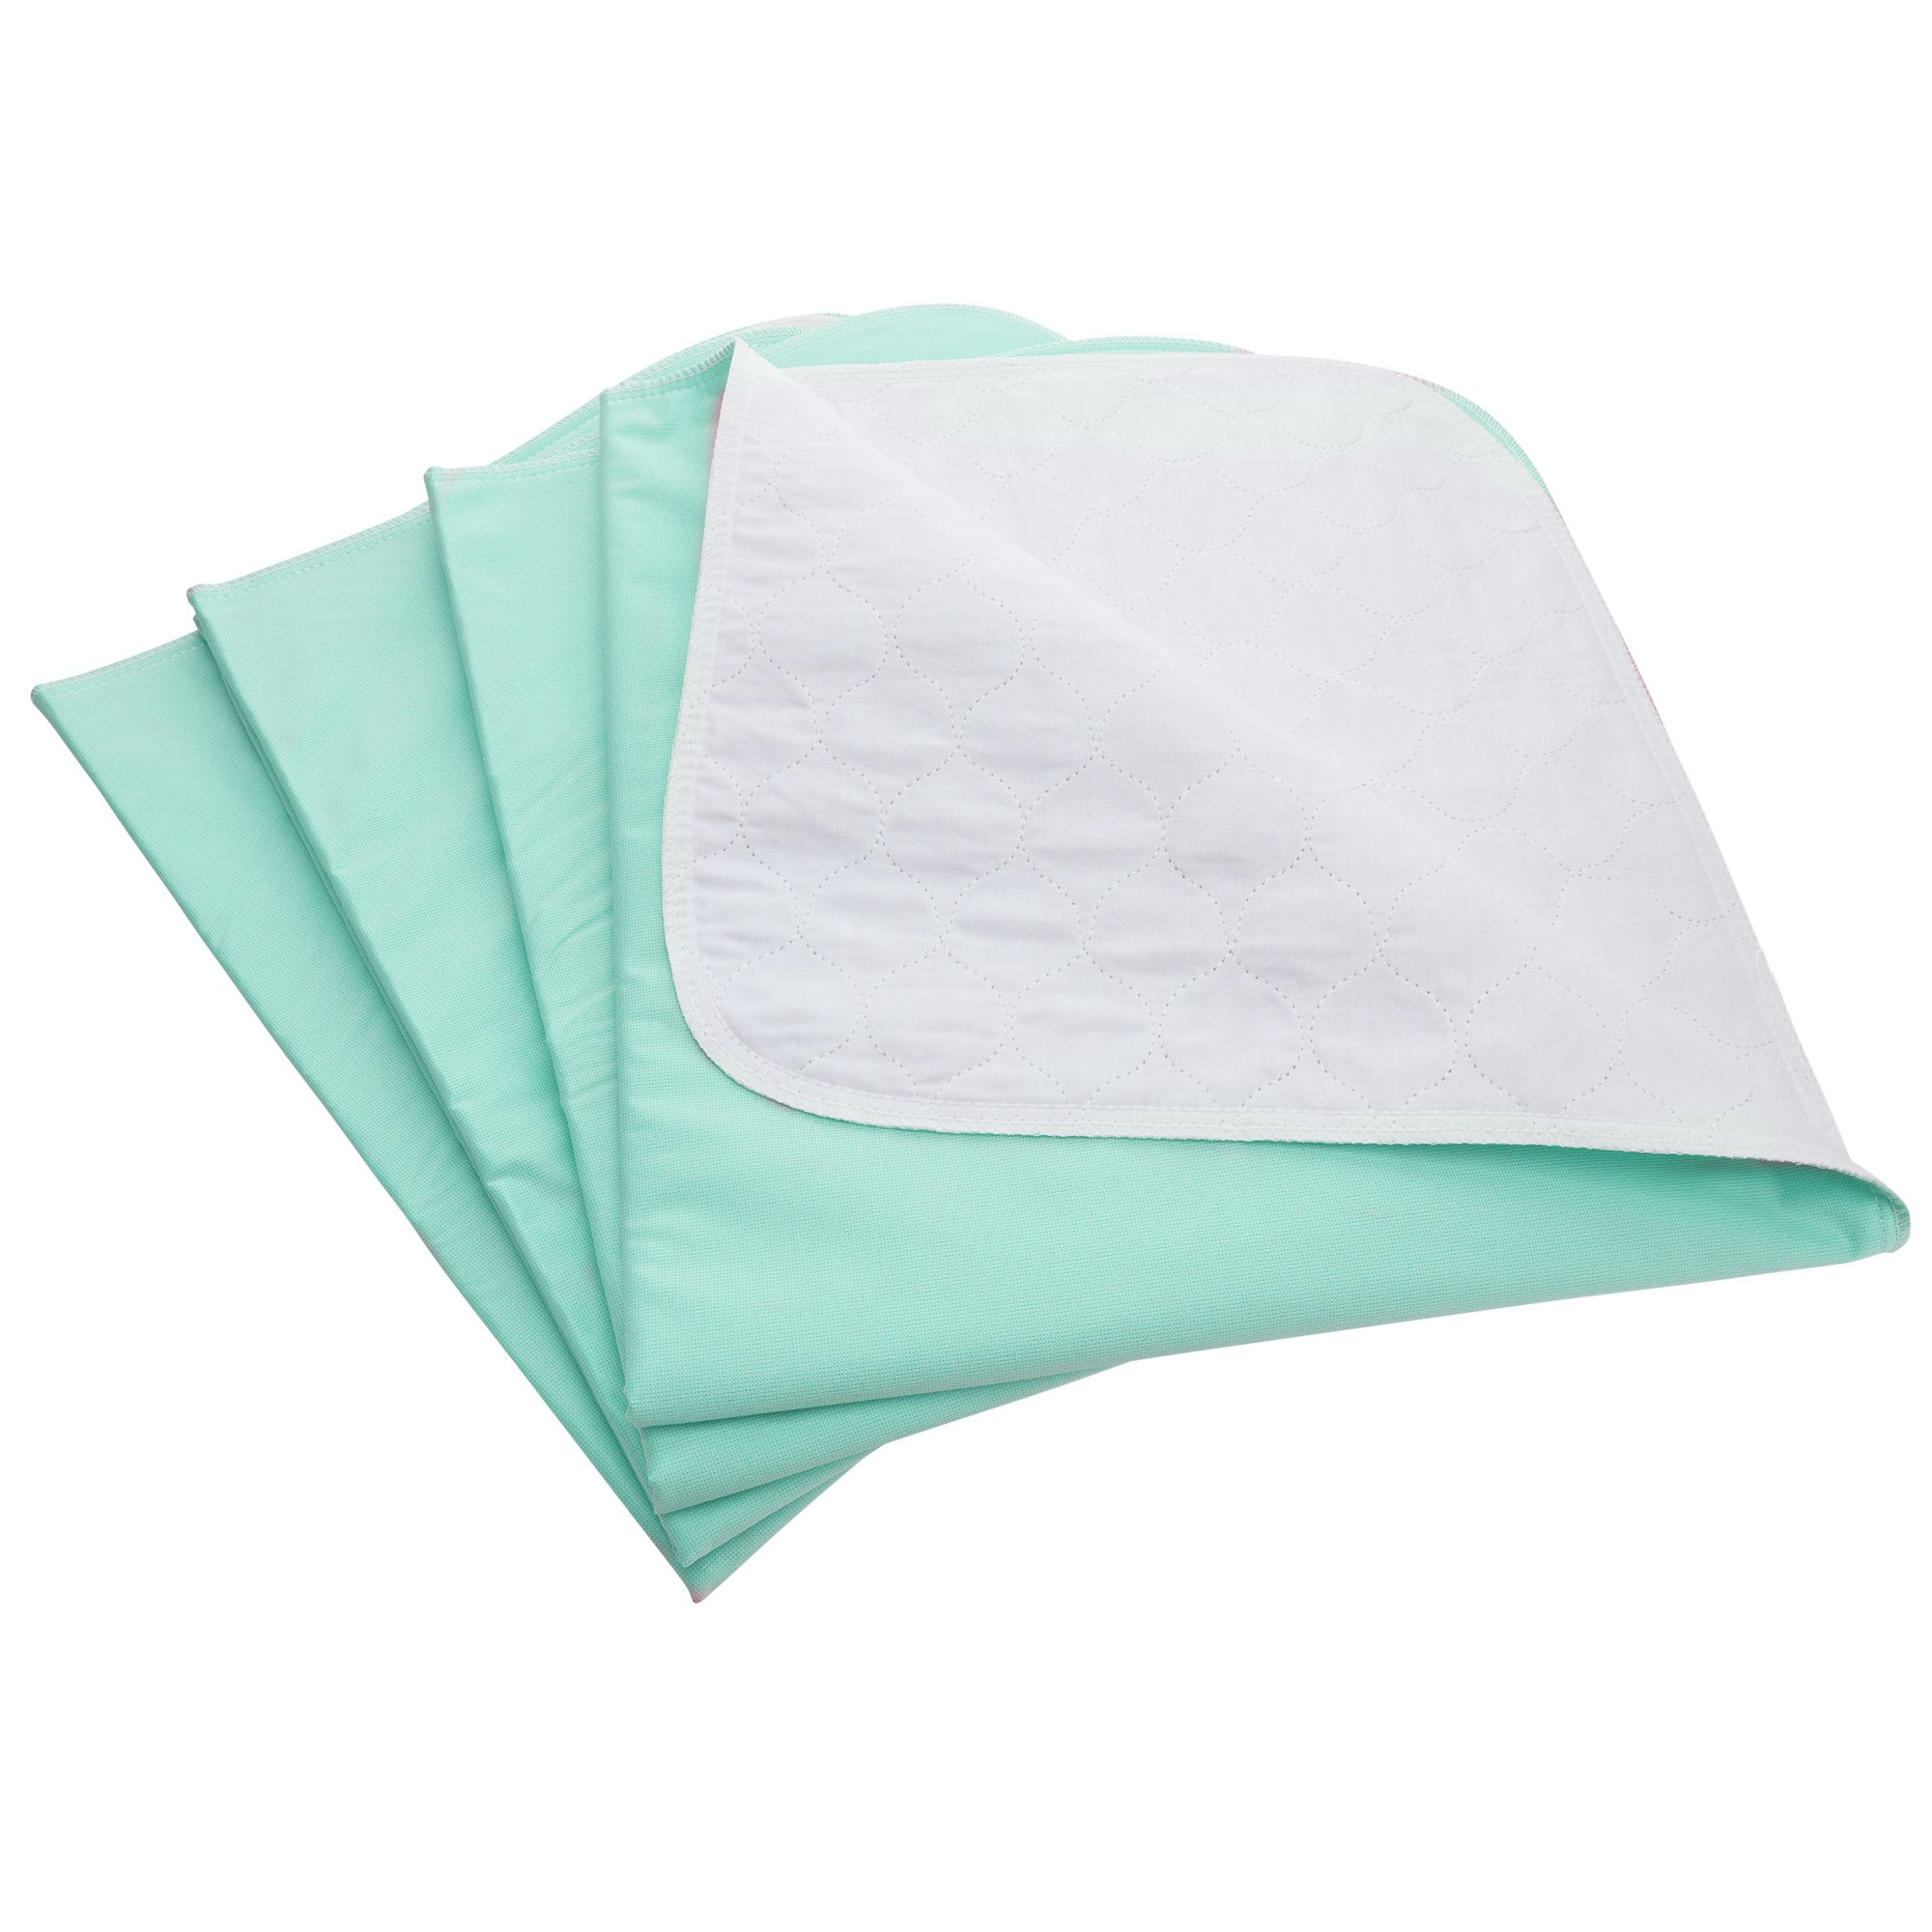 Weaved Collection Washable Reusable Incontinence Underpads, 34